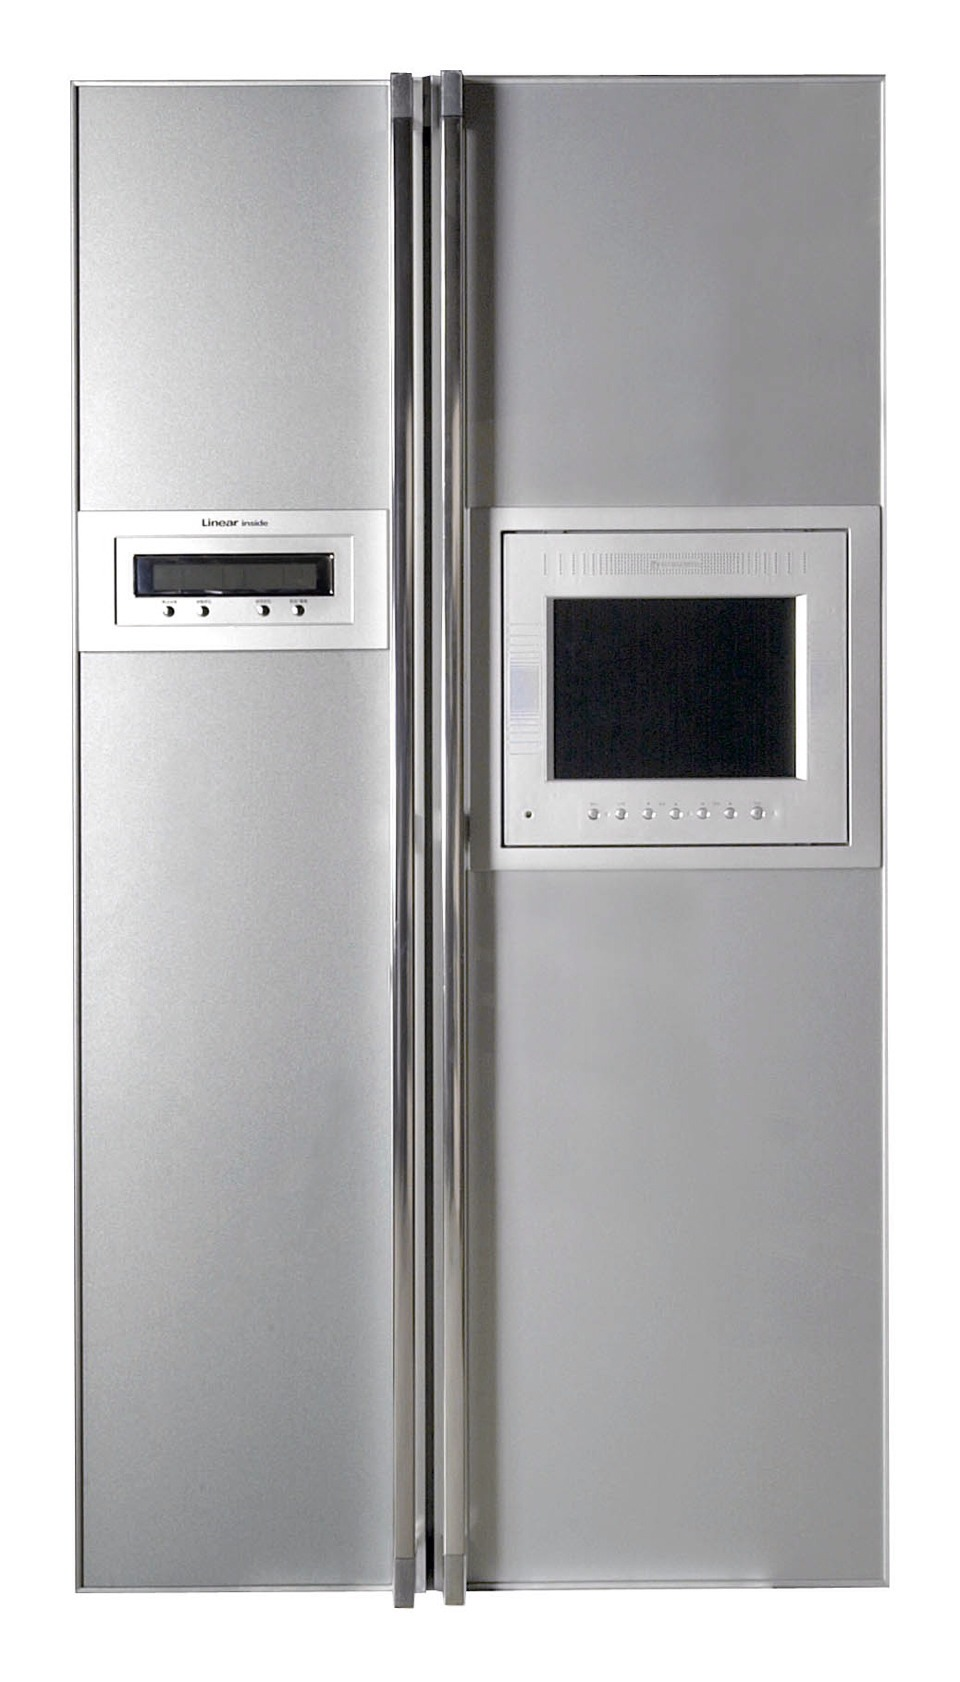 To keep your fridge smelling fresh, dampen a cotton ball with vanilla flavoring and place in the back corner of your fridge. It soaks up the smell a fridge can sometimes get.